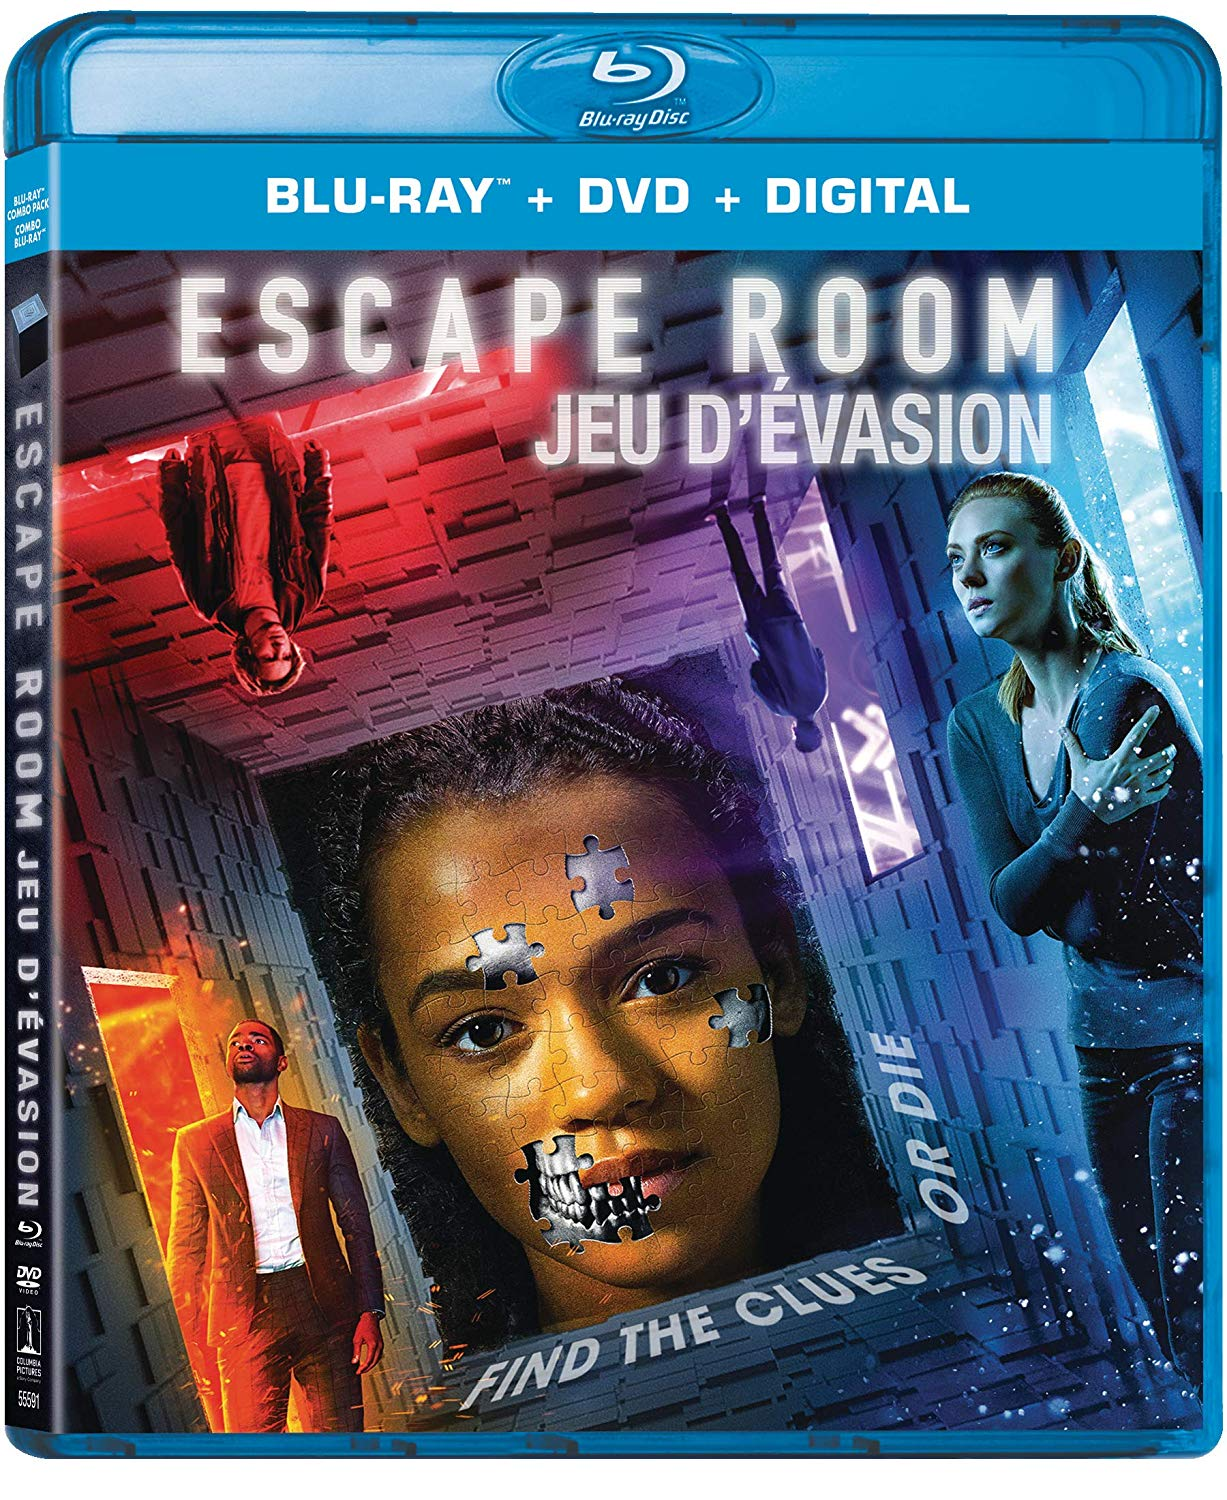 Escape Room on DVD and Blu-ray